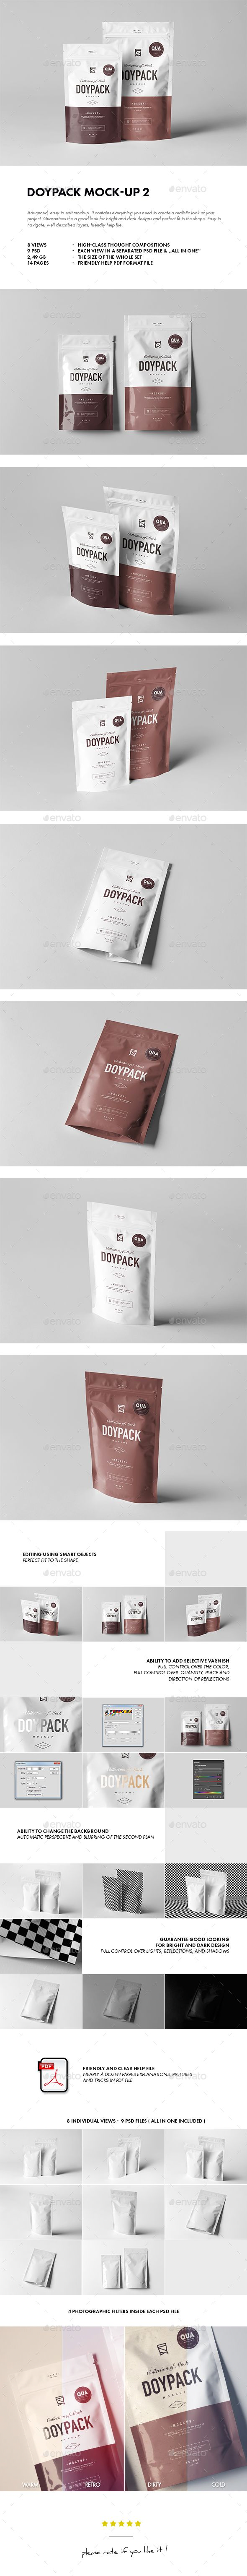 Doypack Mock-up 2 by yogurt86 DOYPACK MOCK-UP 2 Advanced, easy to edit mockup. It contains everything you need to create a realistic look of your project. Guar